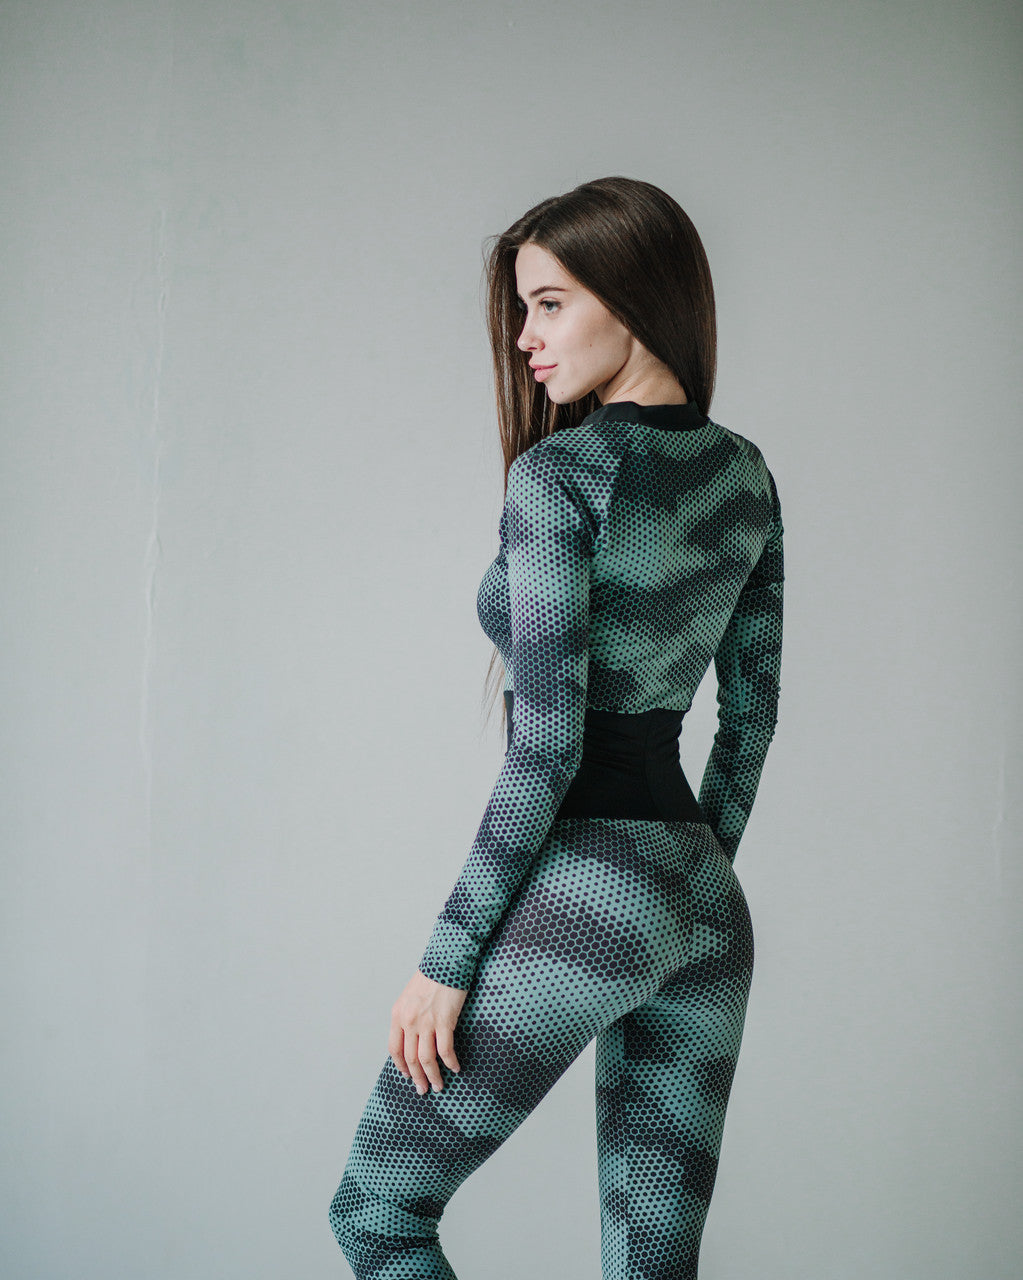 One-piece Bodysuit Iguana Print Long Sleeve - KSUFIT Activewear